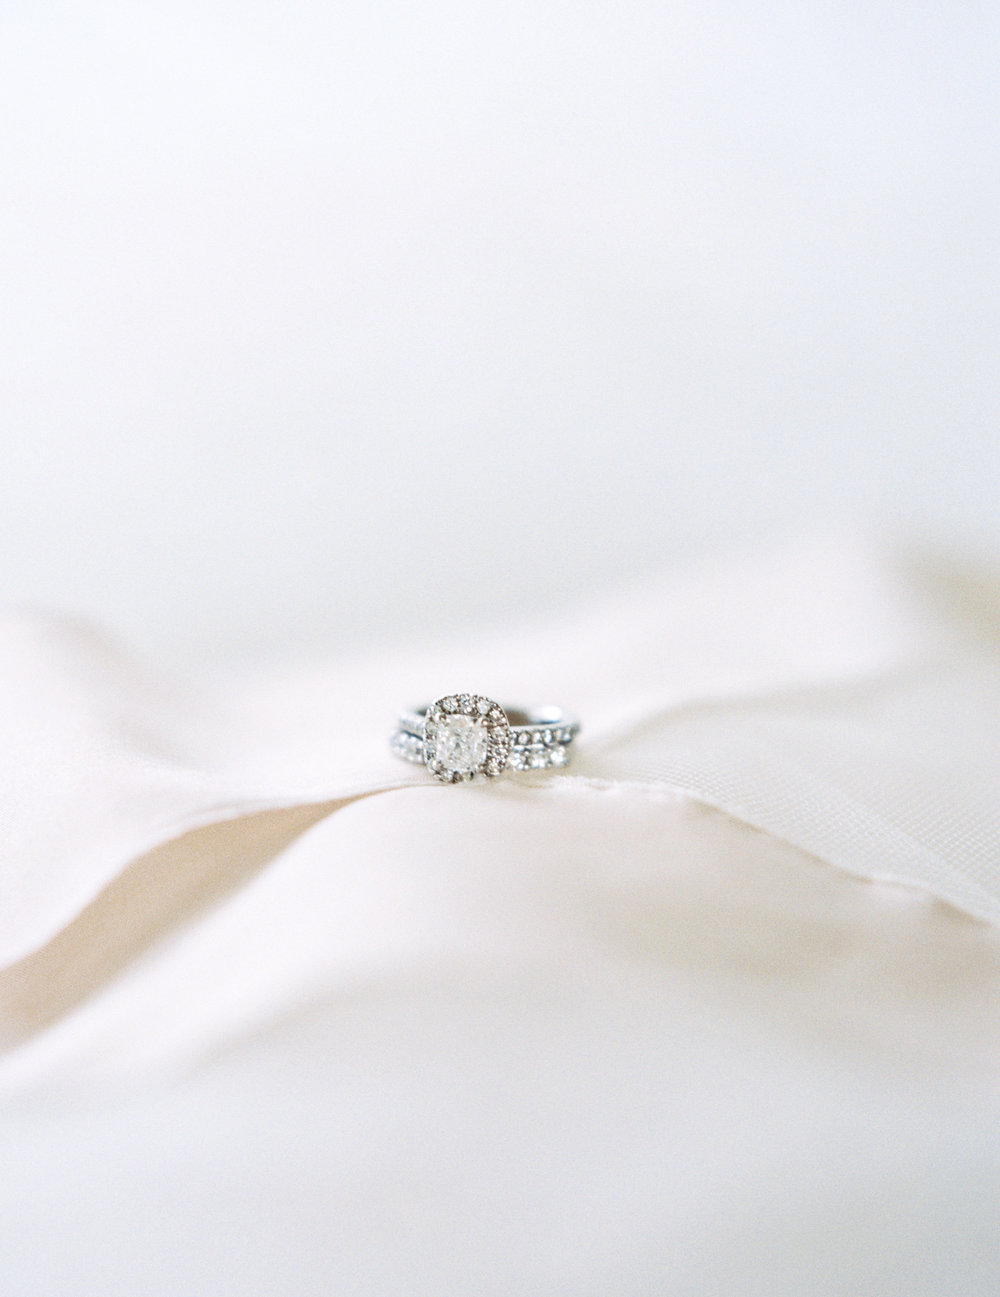 Wedding ring, engagement ring, destination wedding ring